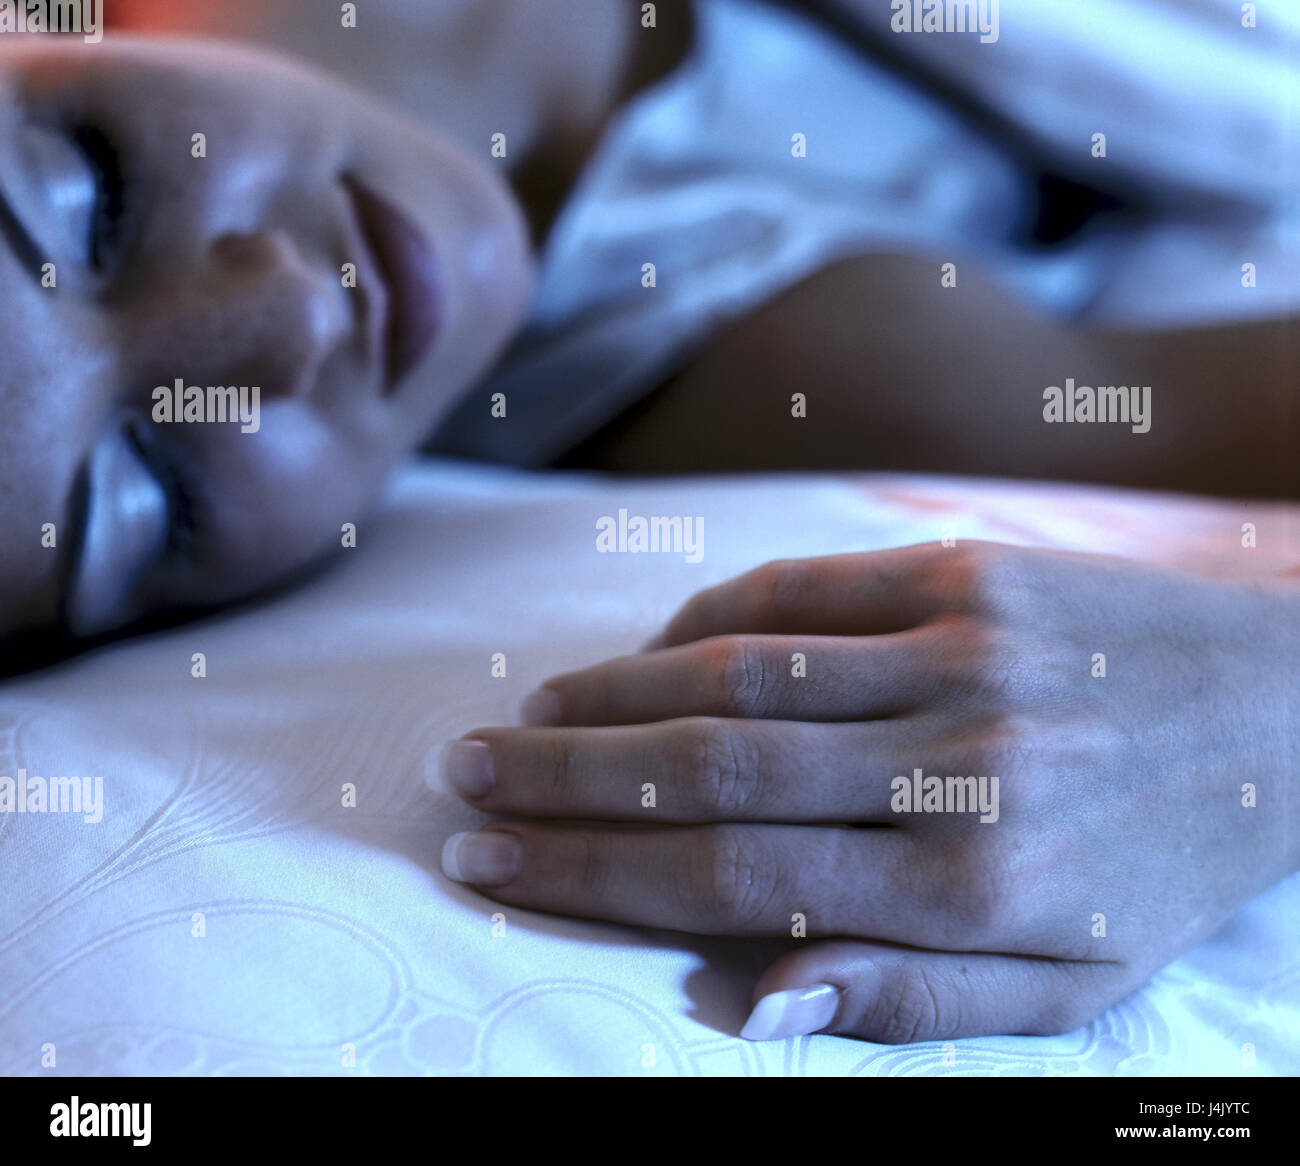 Bed, woman, sleep, relax detail bedroom, sleep, fatigue, tiredly, depletion, détente, recover, rest, rest, - Stock Image